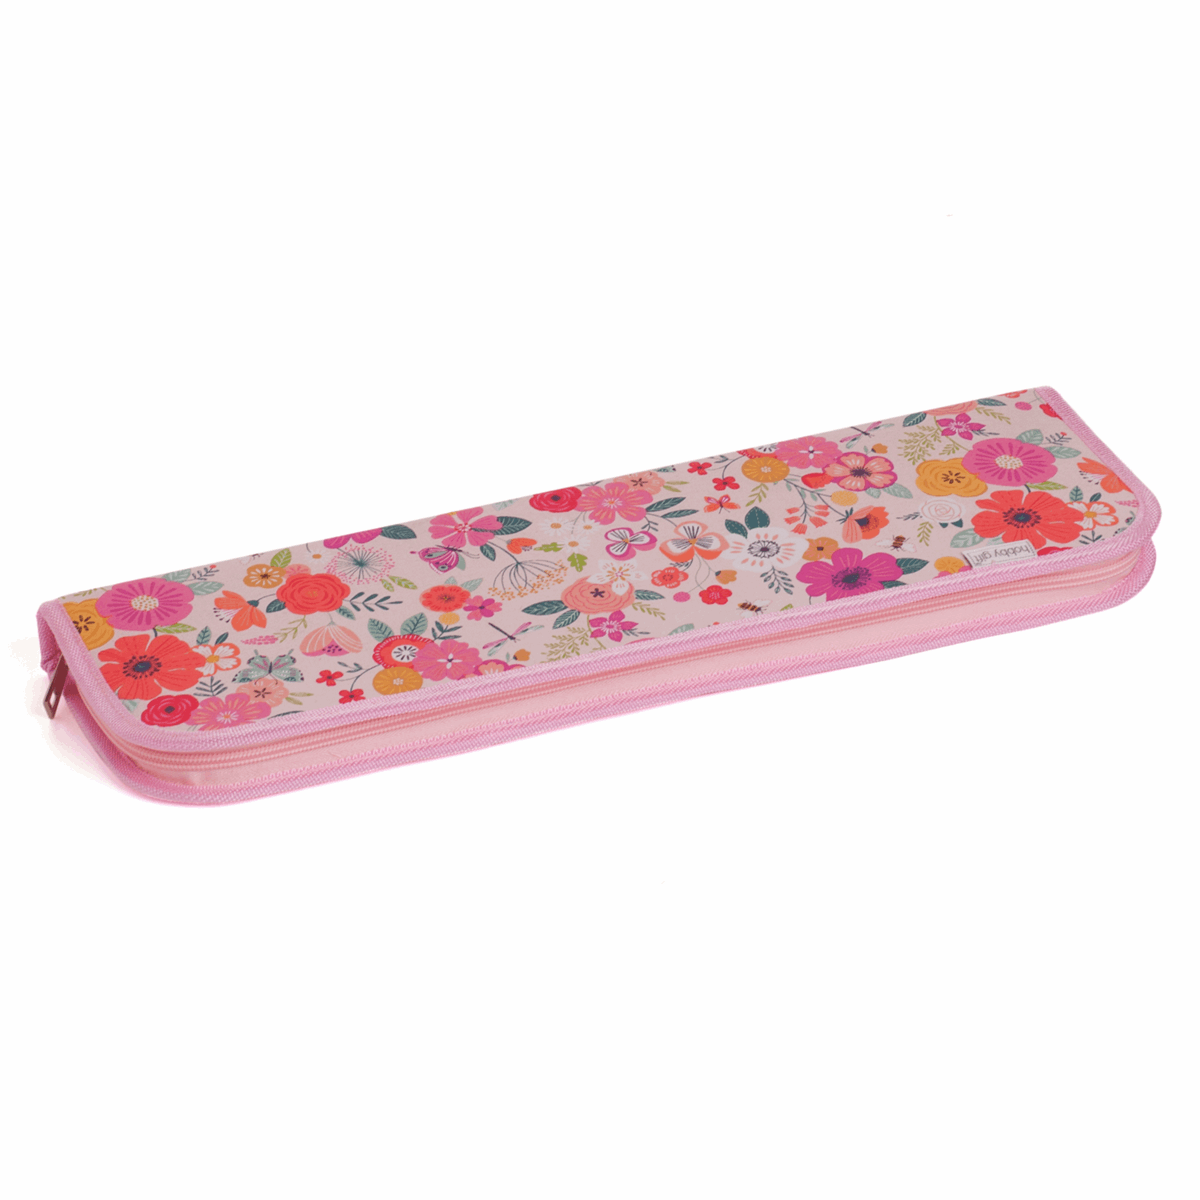 Picture of Knitting Pin and Crochet Hook Case: Hard: Floral Garden: Pink: Pack of 3